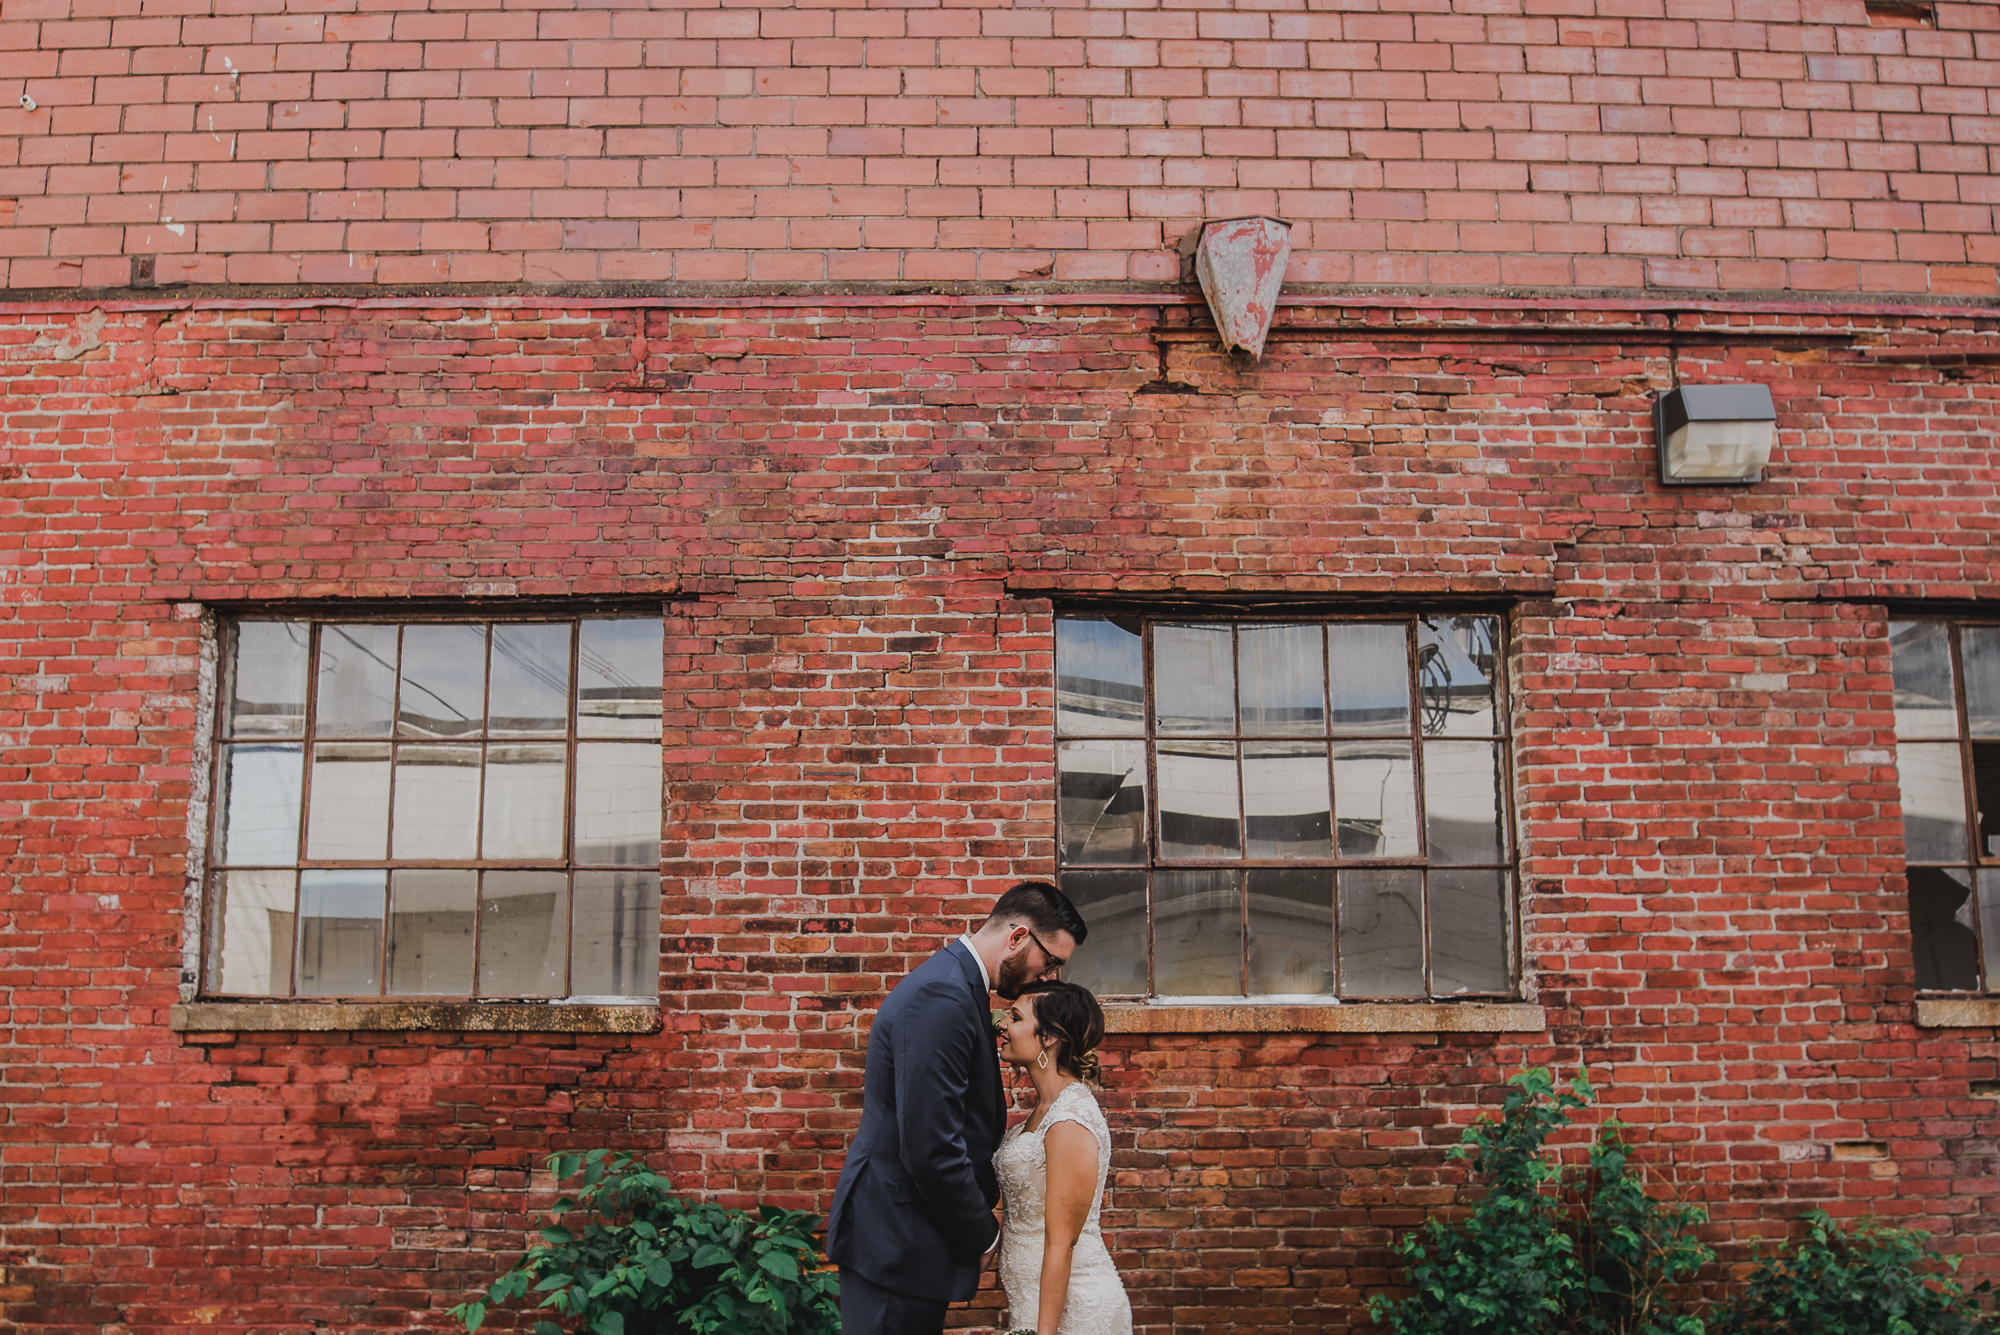 Melissa Cervantes Photography _ Kelsey + Ben Junebug Weddings Submission-93.jpg